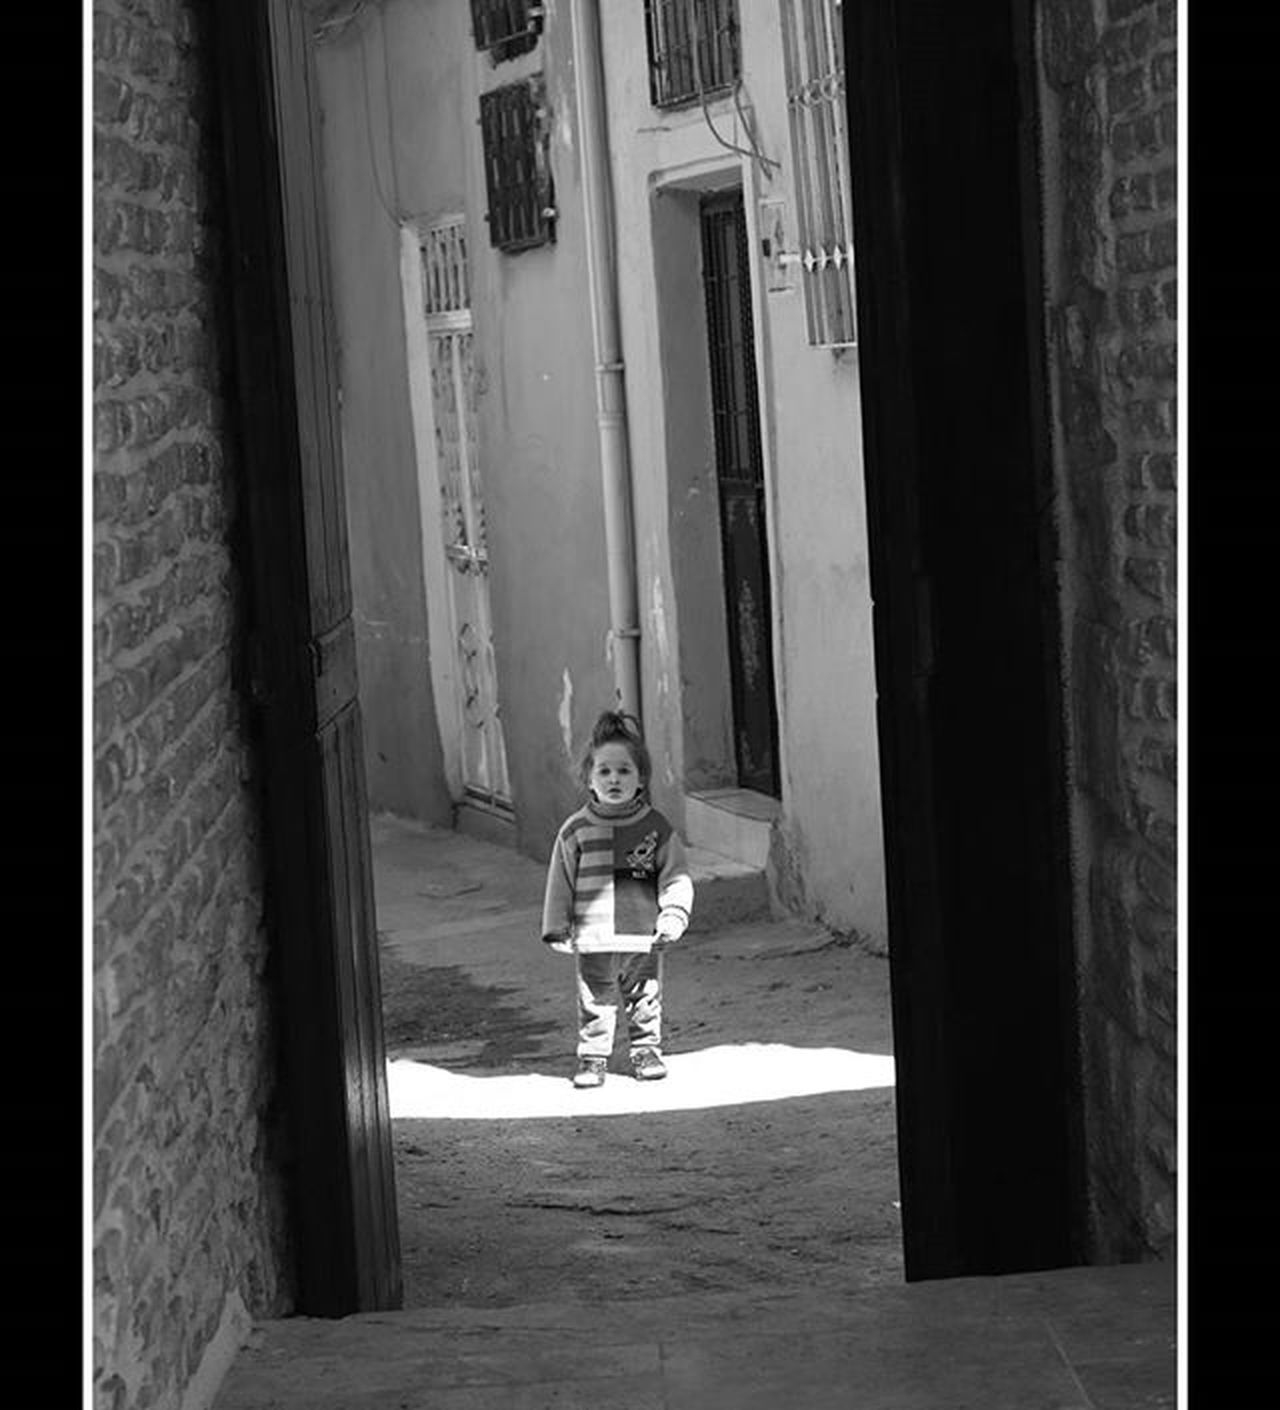 ne oluyor orada... çocuk Child Childhood Children Amateurphotography Amateurphotographer  Photographer Antakya Antakyasokakları Canon Canonphotography Canon70d Monochrome MonochromePhotography Siyahbeyazfoto Fotograf Streetphotography Photooftheday Bwphotography MyPicture MyPhotography Photobycanokkali Photographercanokkali